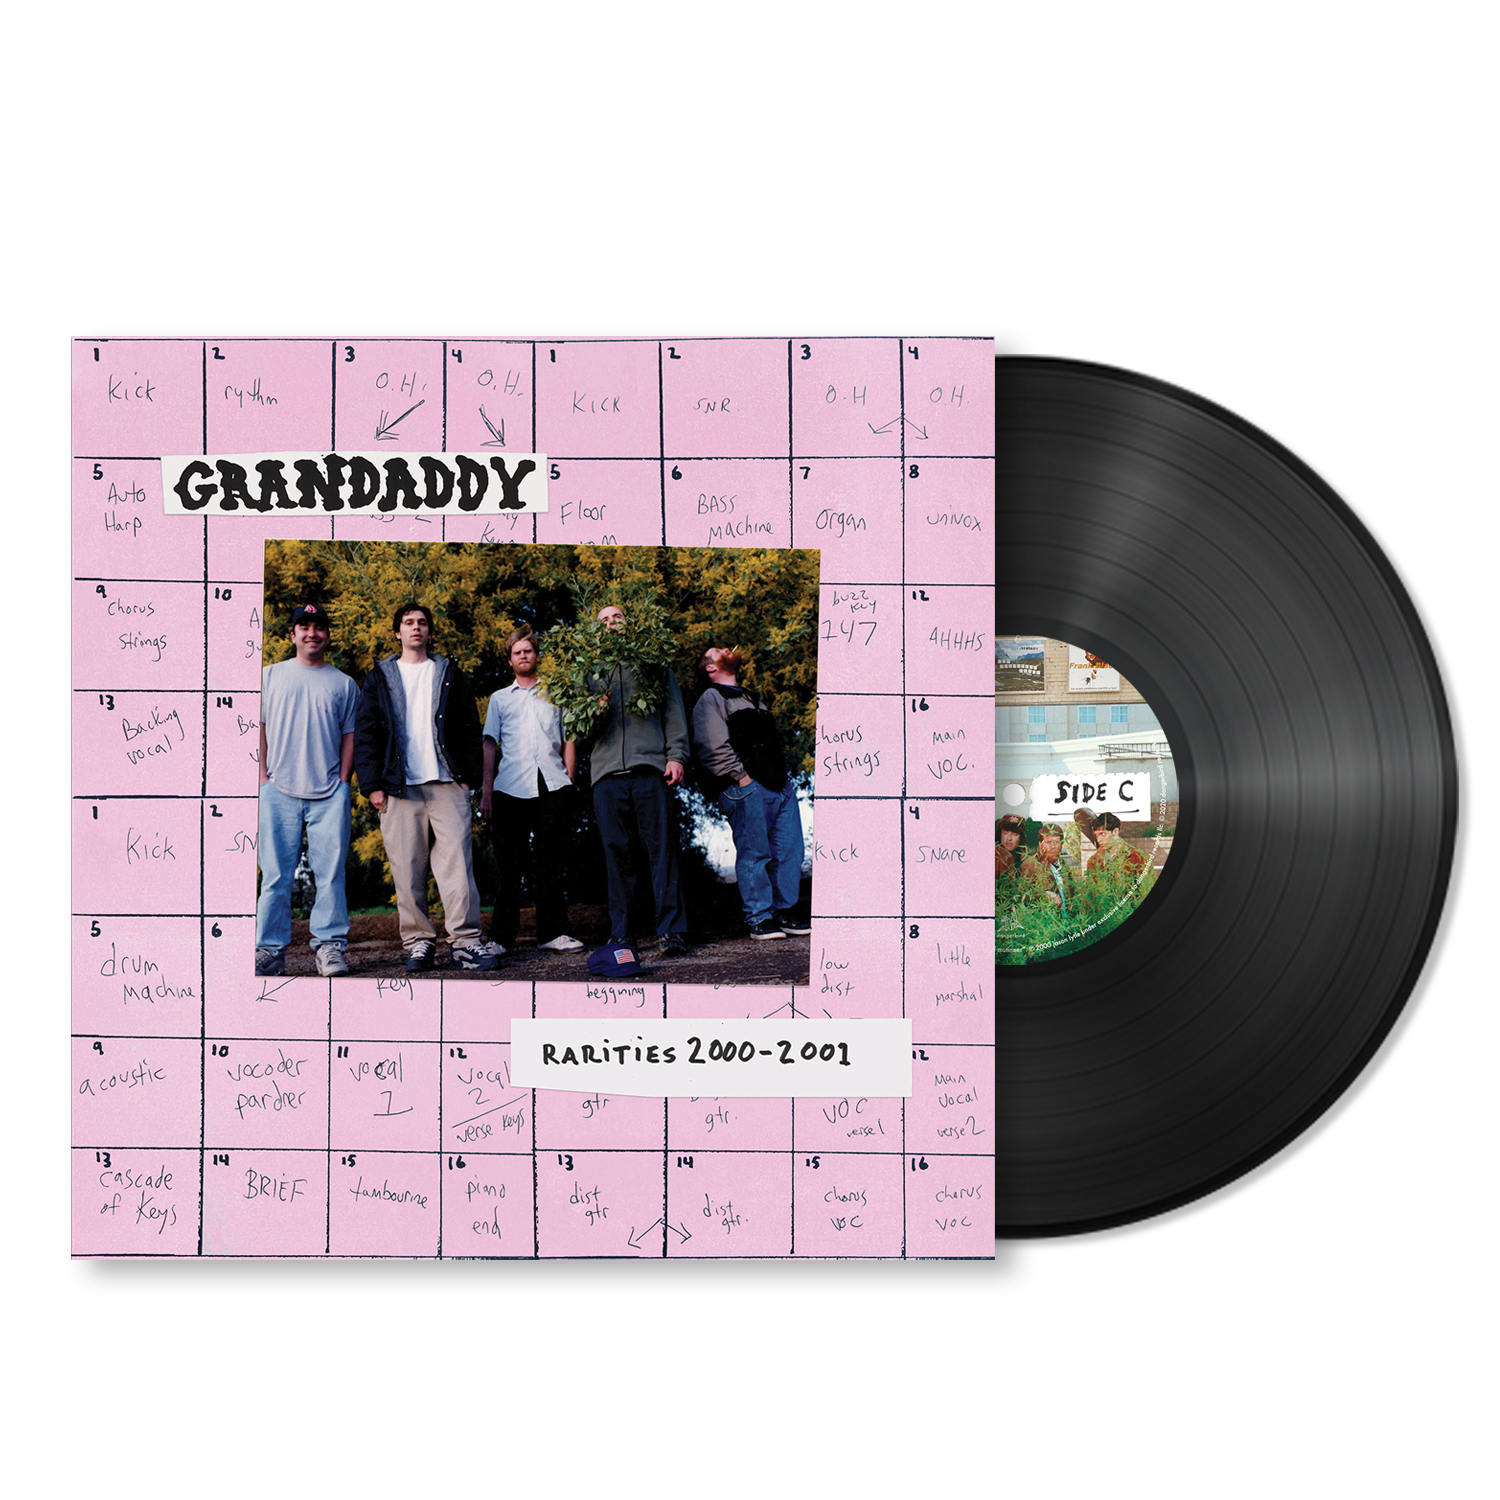 Grandaddy - The Sophtware Slump 20th Anniversary Collection - 4 LP Boxed Set Signed Deluxe Bundle